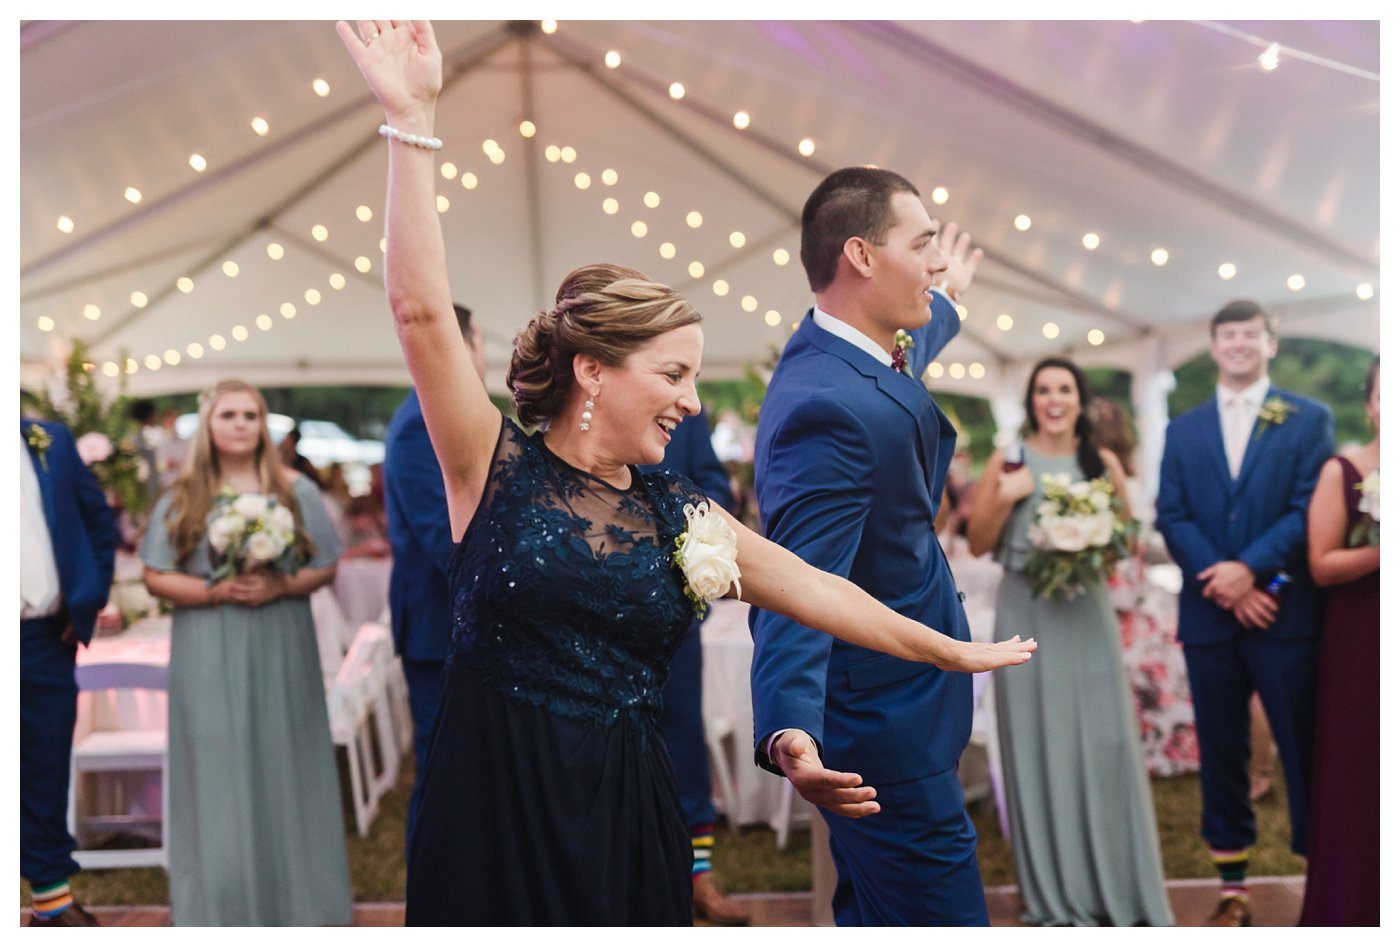 Mother Son Dance at Double C Ranch by Amanda and Grady Photography